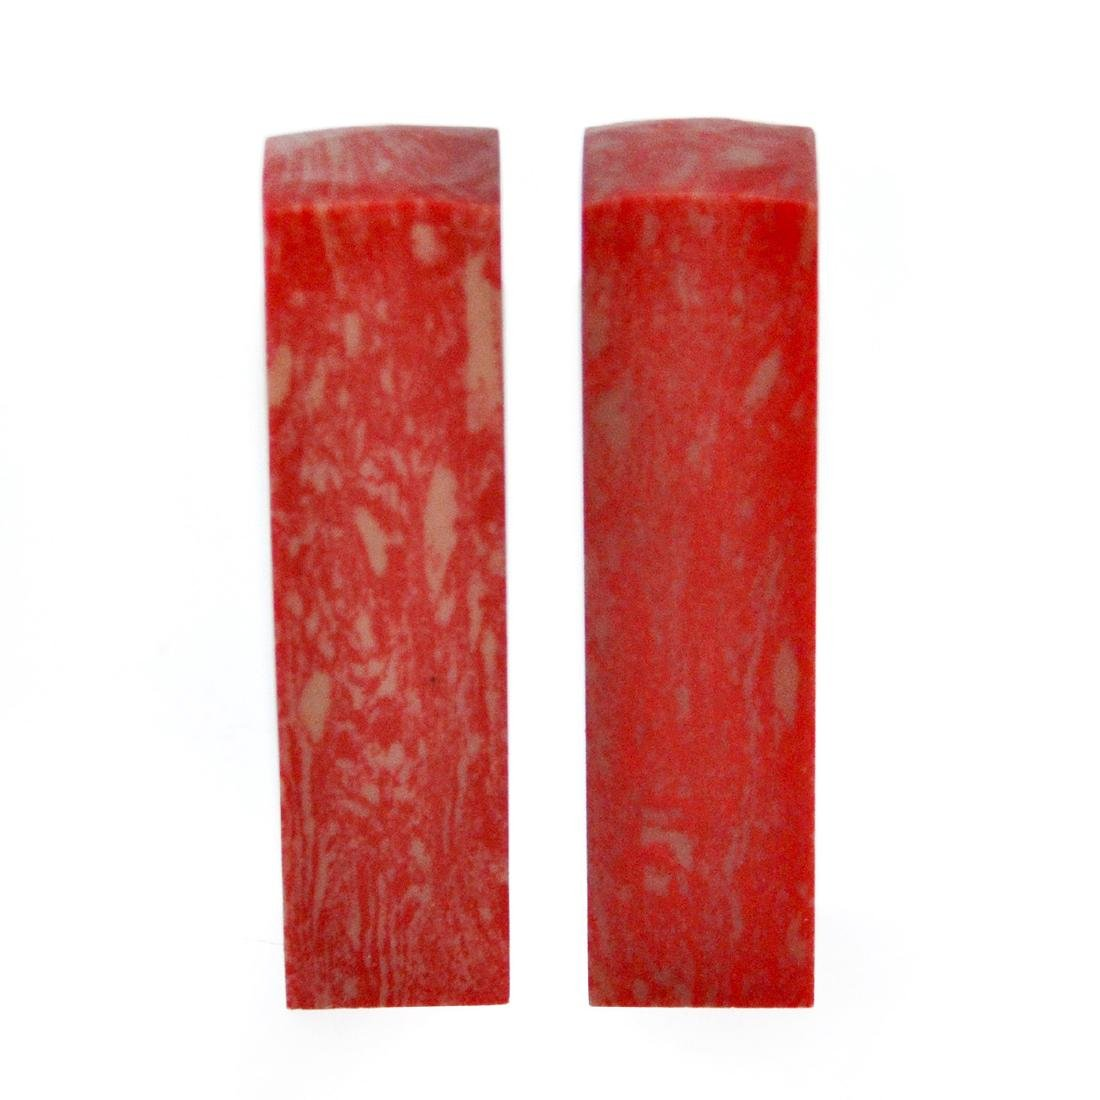 A Pair of Columnar Ji Xue Stone Seals - 5